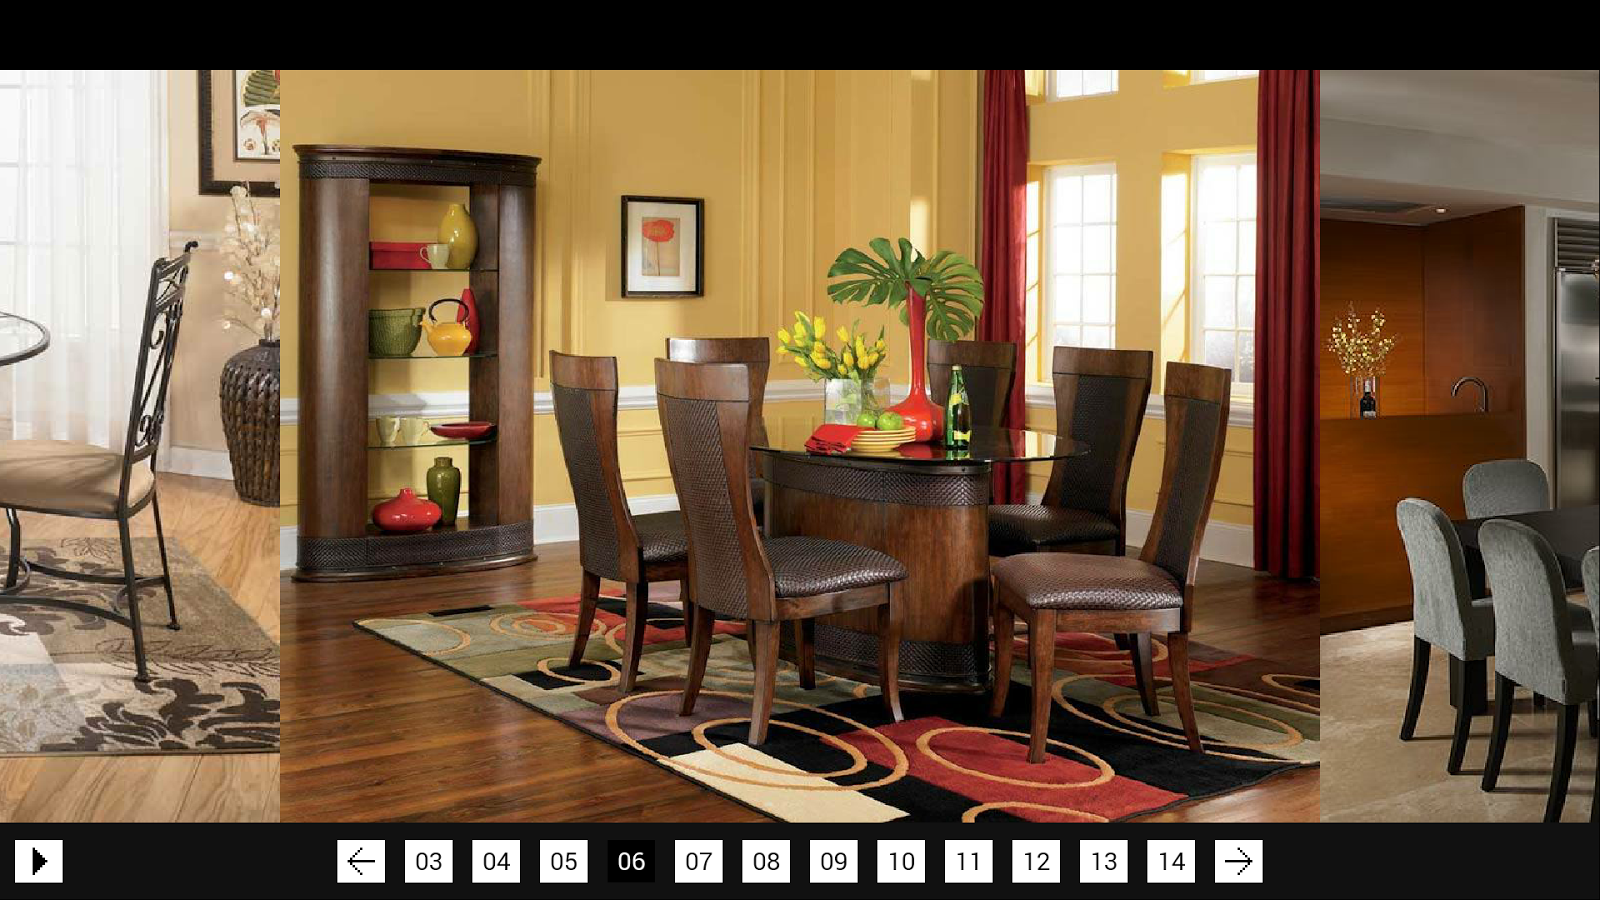 Dining room decor android apps on google play for Q significa dining room